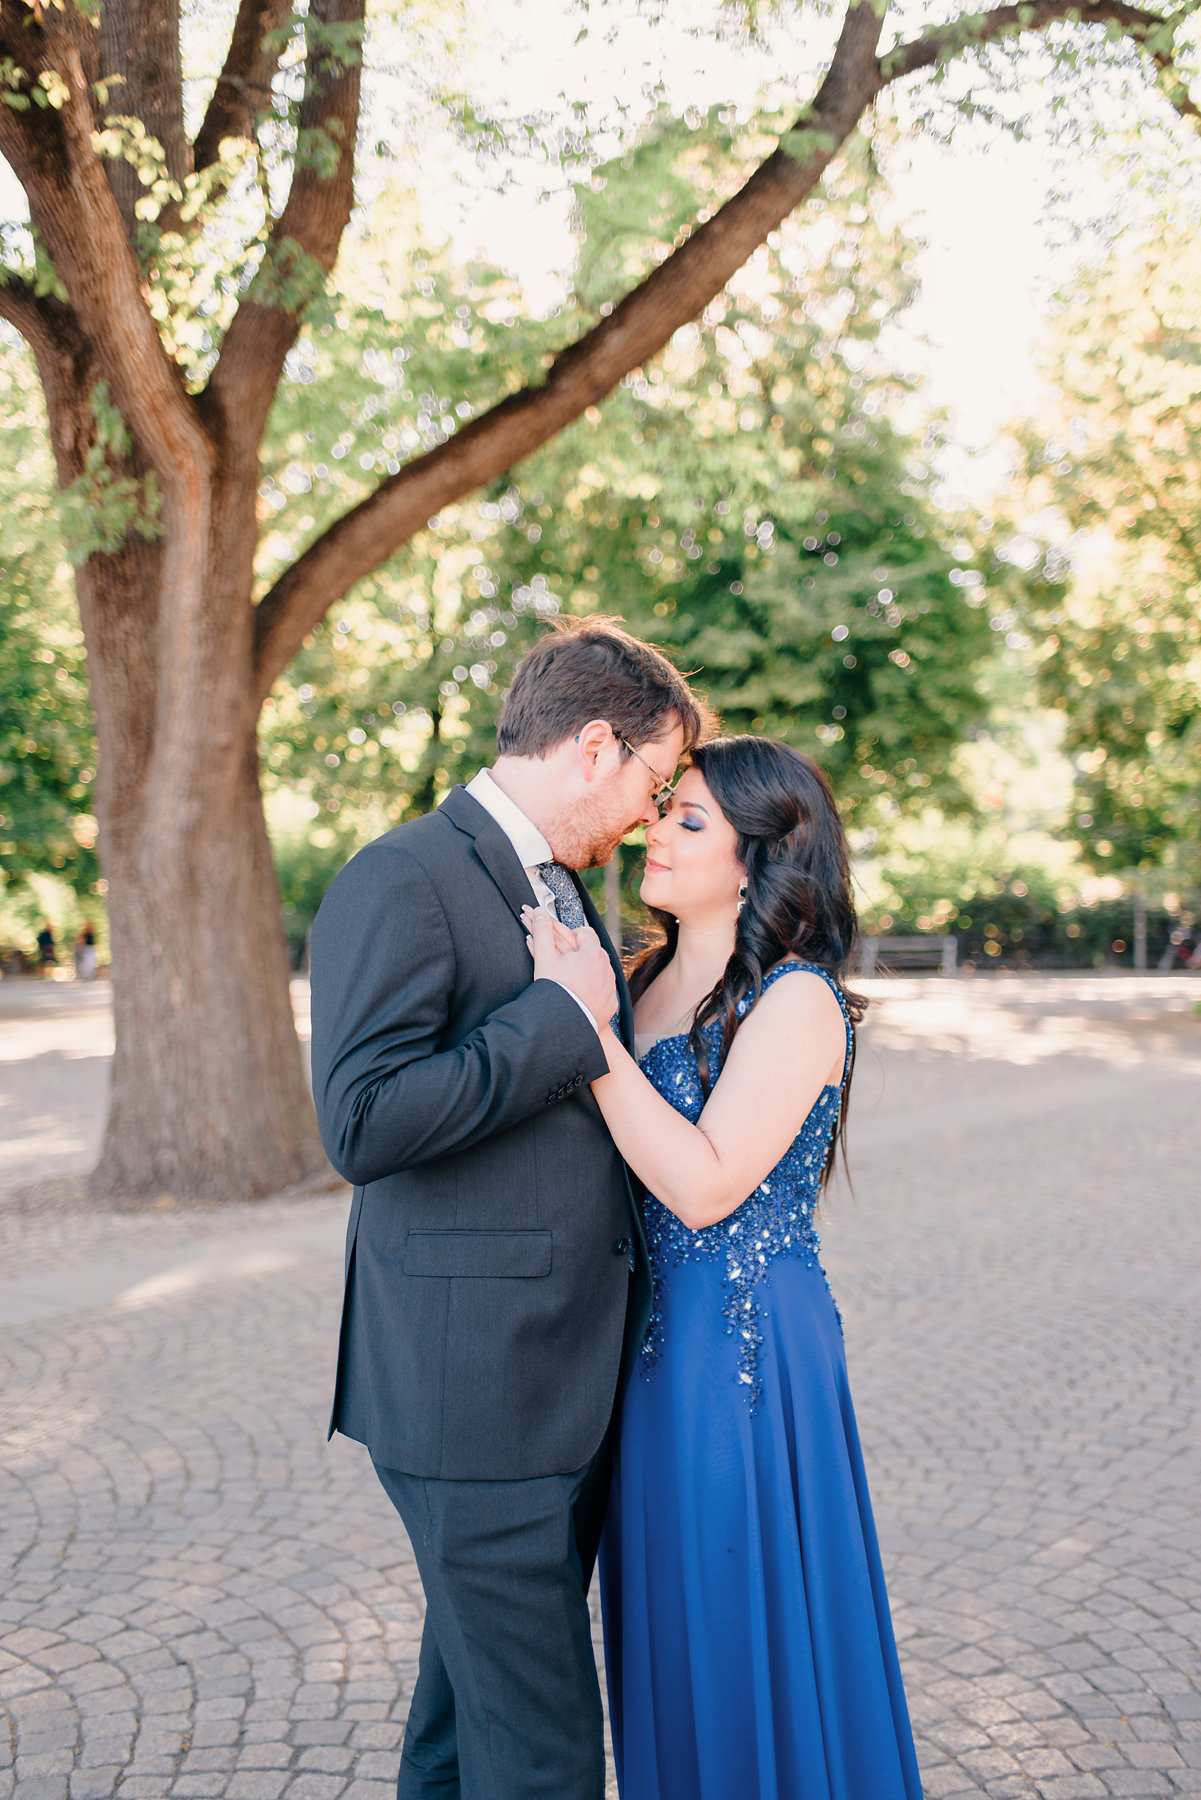 Whimsical Engagement Session